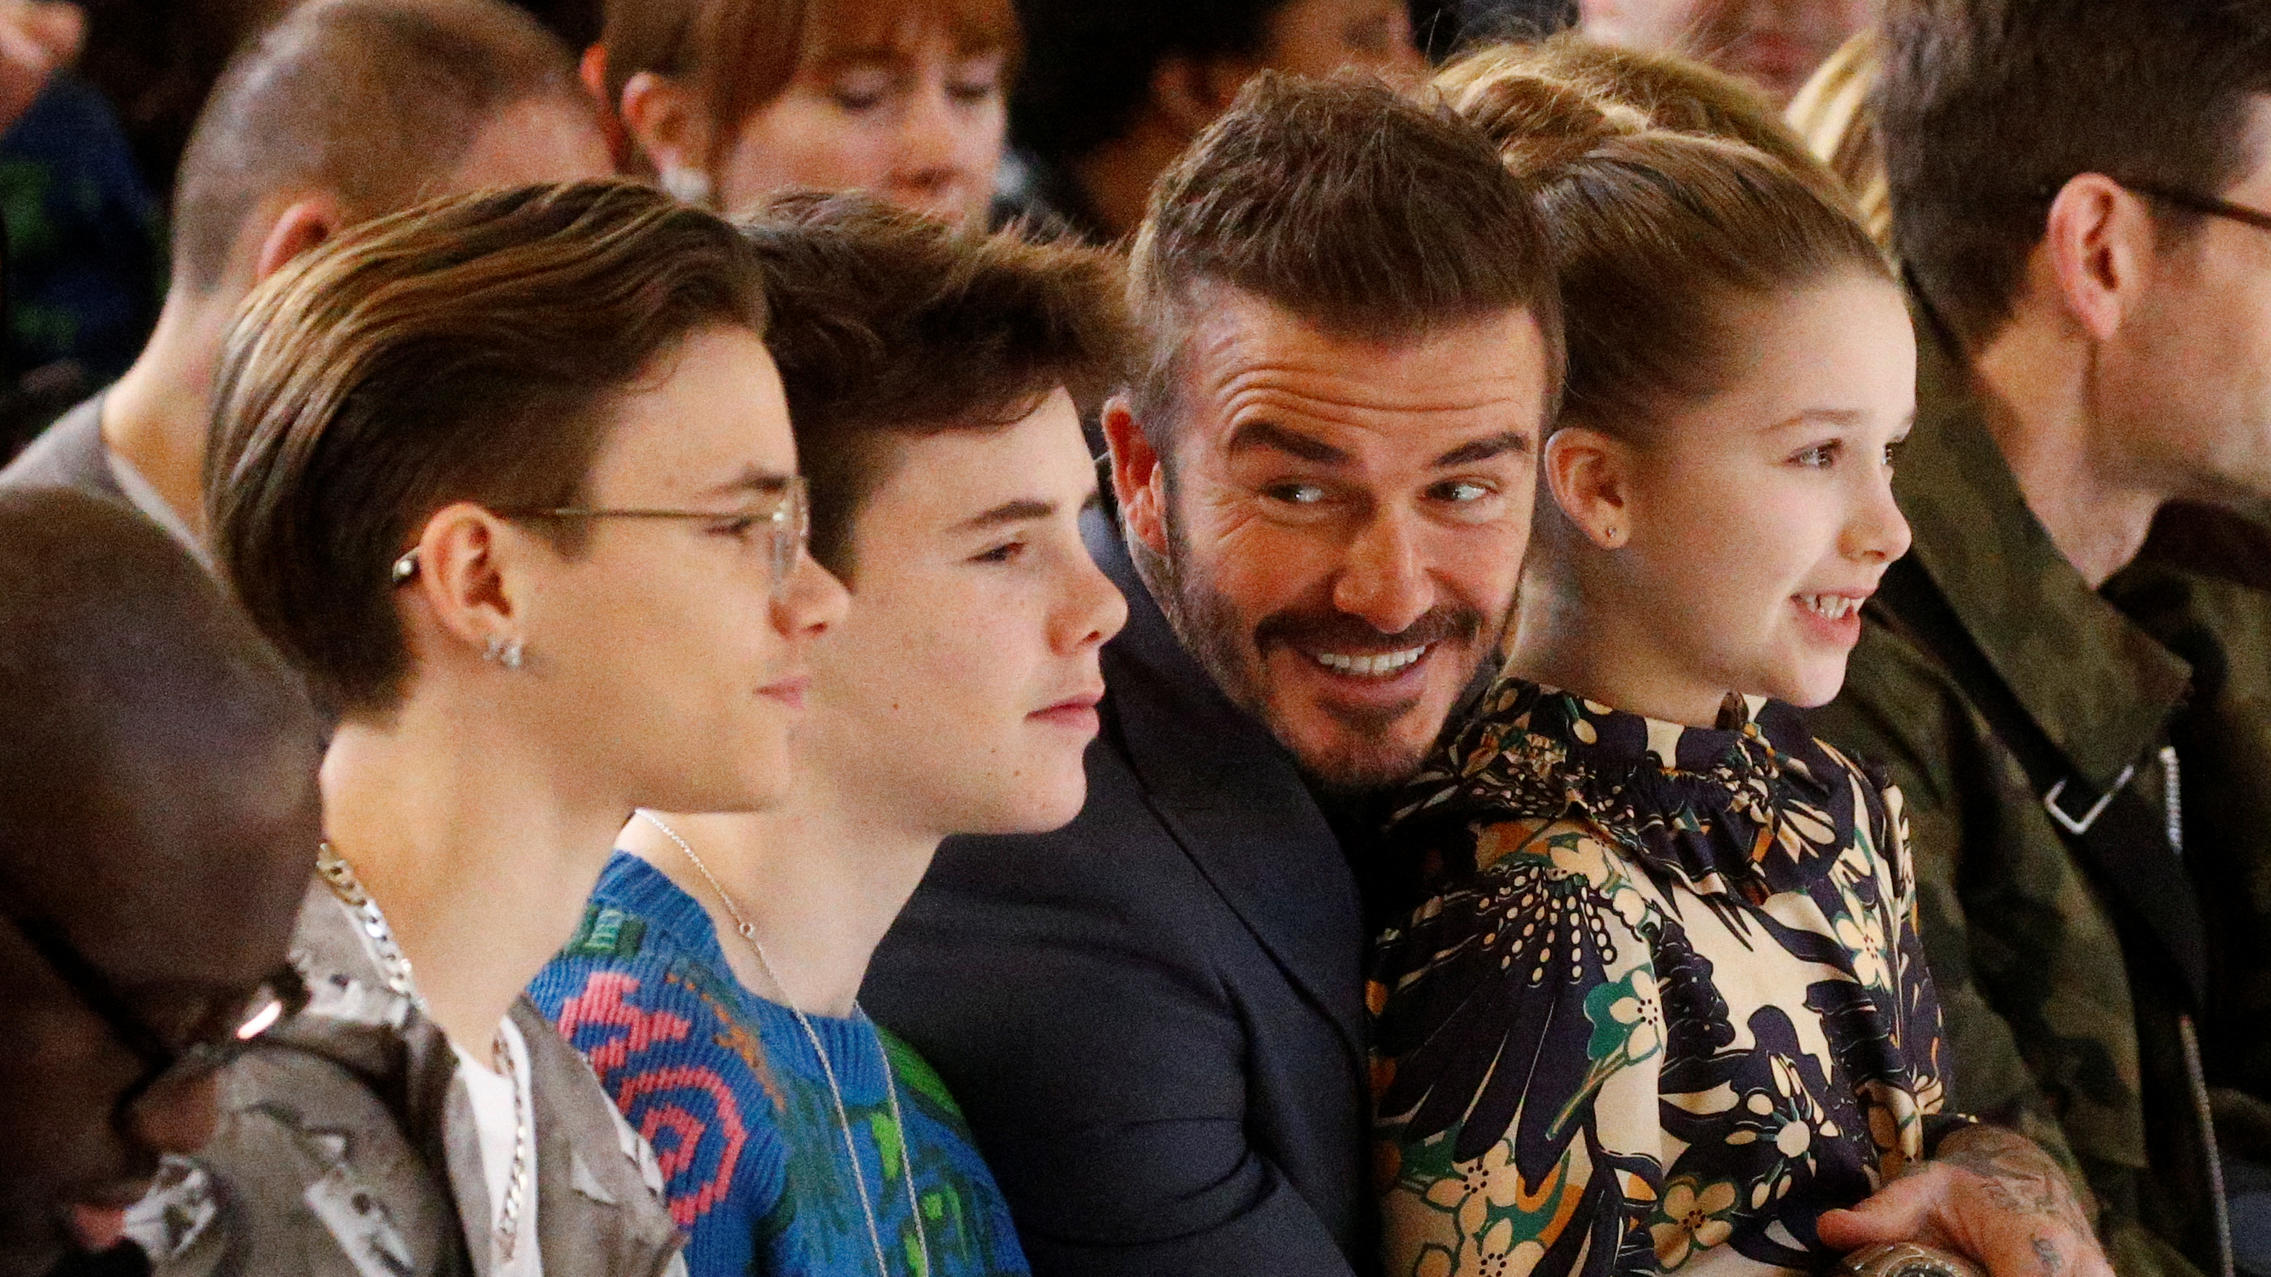 David Beckham, with his children Romeo, Cruz and Harper,  at the Victoria Beckham catwalk show during London Fashion Week in London, Britain, February 16, 2020. REUTERS/Henry Nicholls